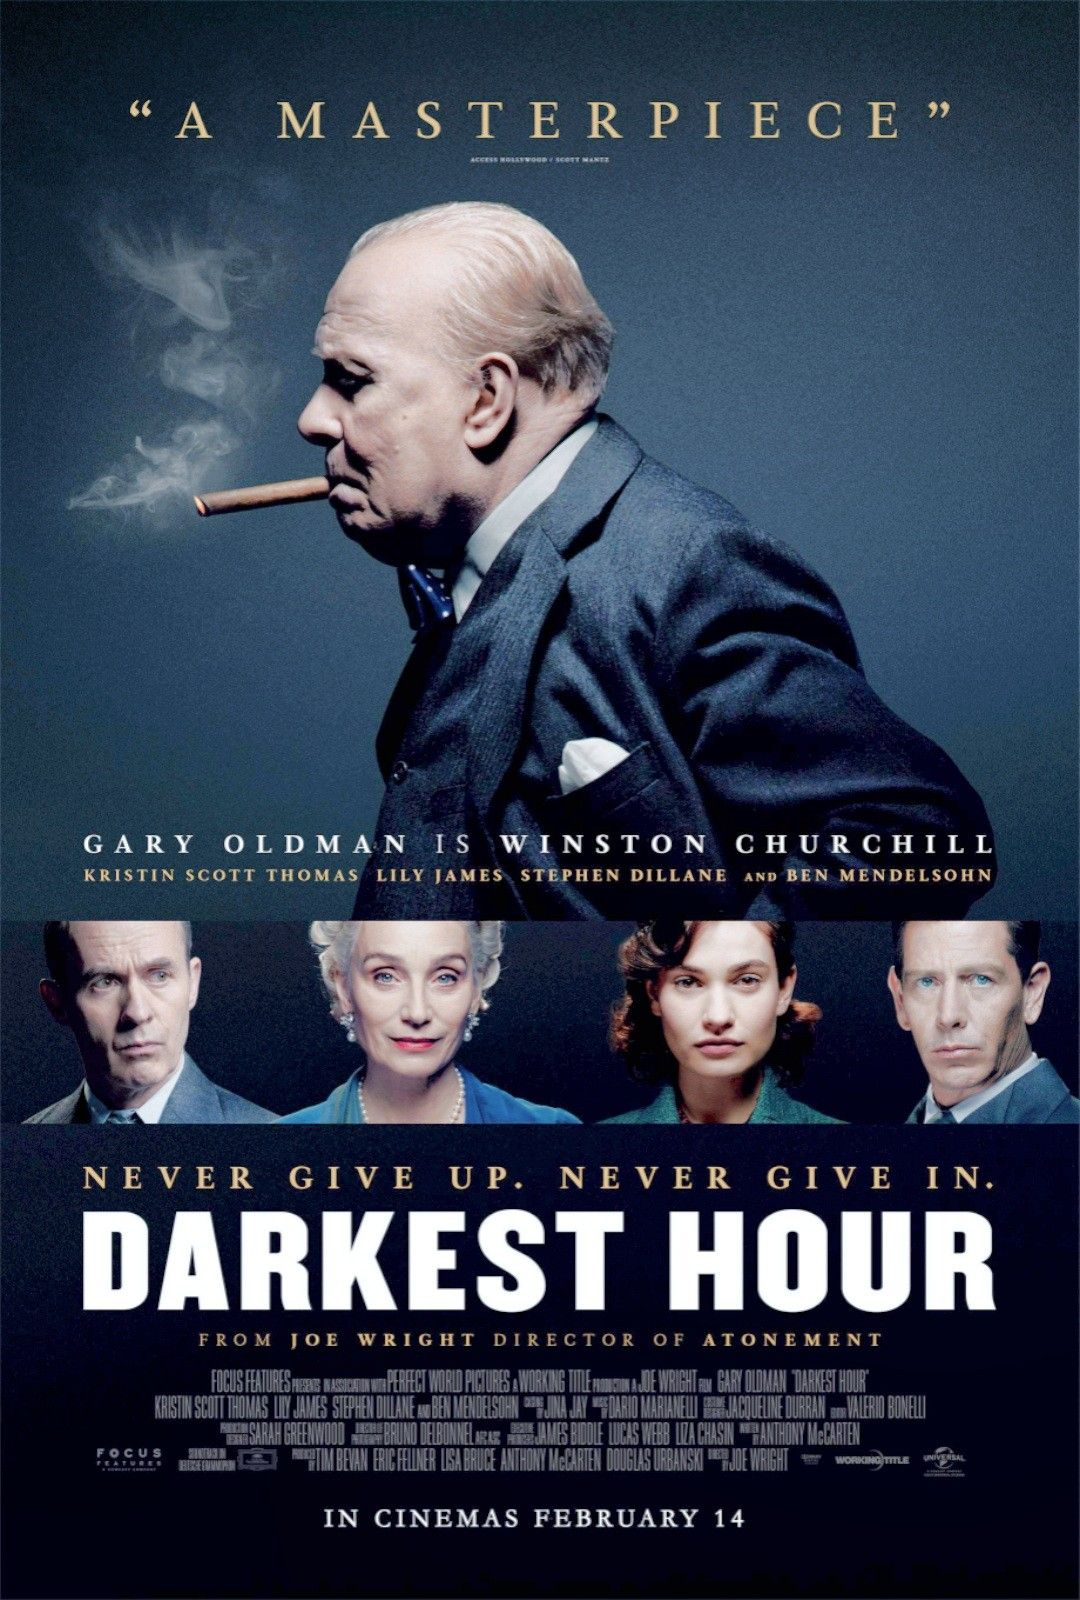 Darkest Hour     2017 | Movie Posters in 2019 | Oscar movies